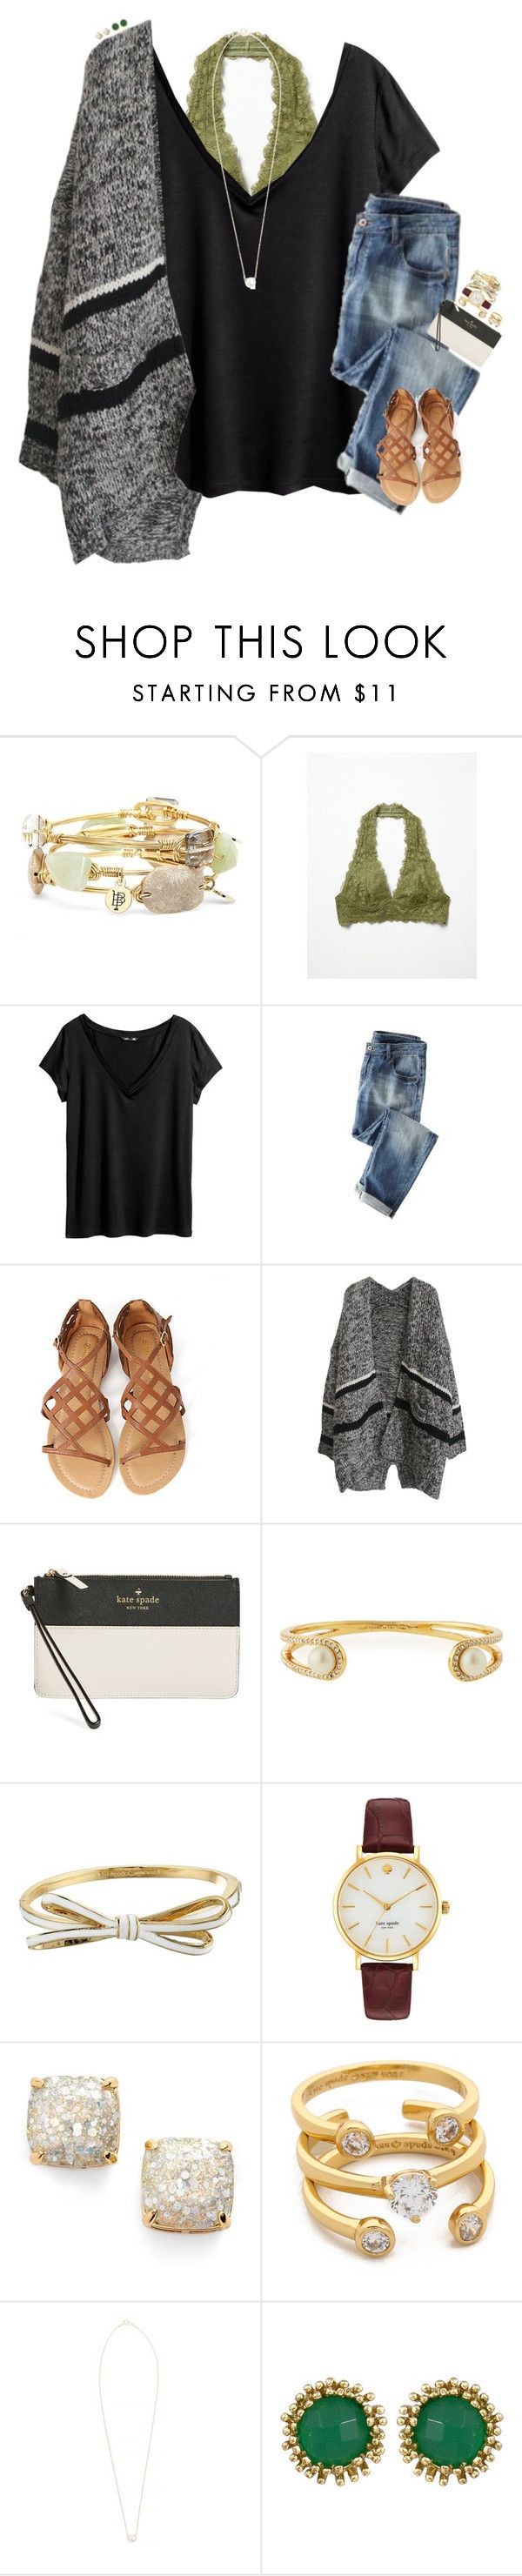 """""""Taking Maggie And Penelope Shopping With Rowan"""" by cfc-prep-sc ❤ liked on Polyvore featuring Bourbon and Boweties, Free People, H&M, Wrap, Kate Spade, Dogeared, Kendra Scott, women's clothing, women's fashion and women"""